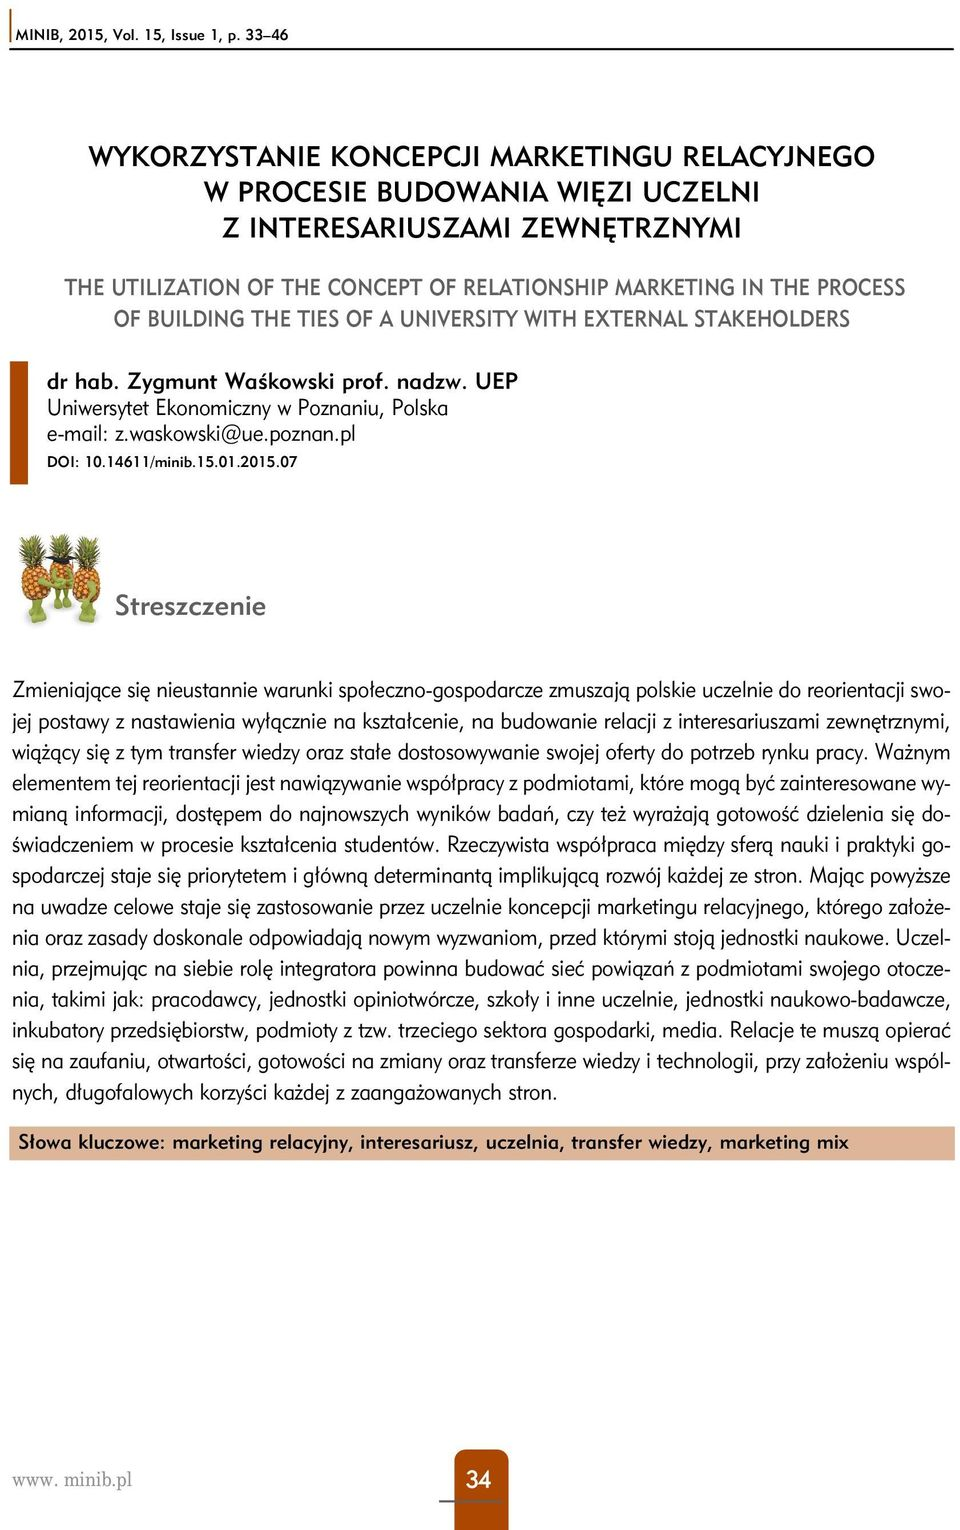 BUILDING THE TIES OF A UNIVERSITY WITH EXTERNAL STAKEHOLDERS dr hab. Zygmunt Waśkowski prof. nadzw. UEP Uniwersytet Ekonomiczny w Poznaniu, Polska e-mail: z.waskowski@ue.poznan.pl DOI: 10.14611/minib.